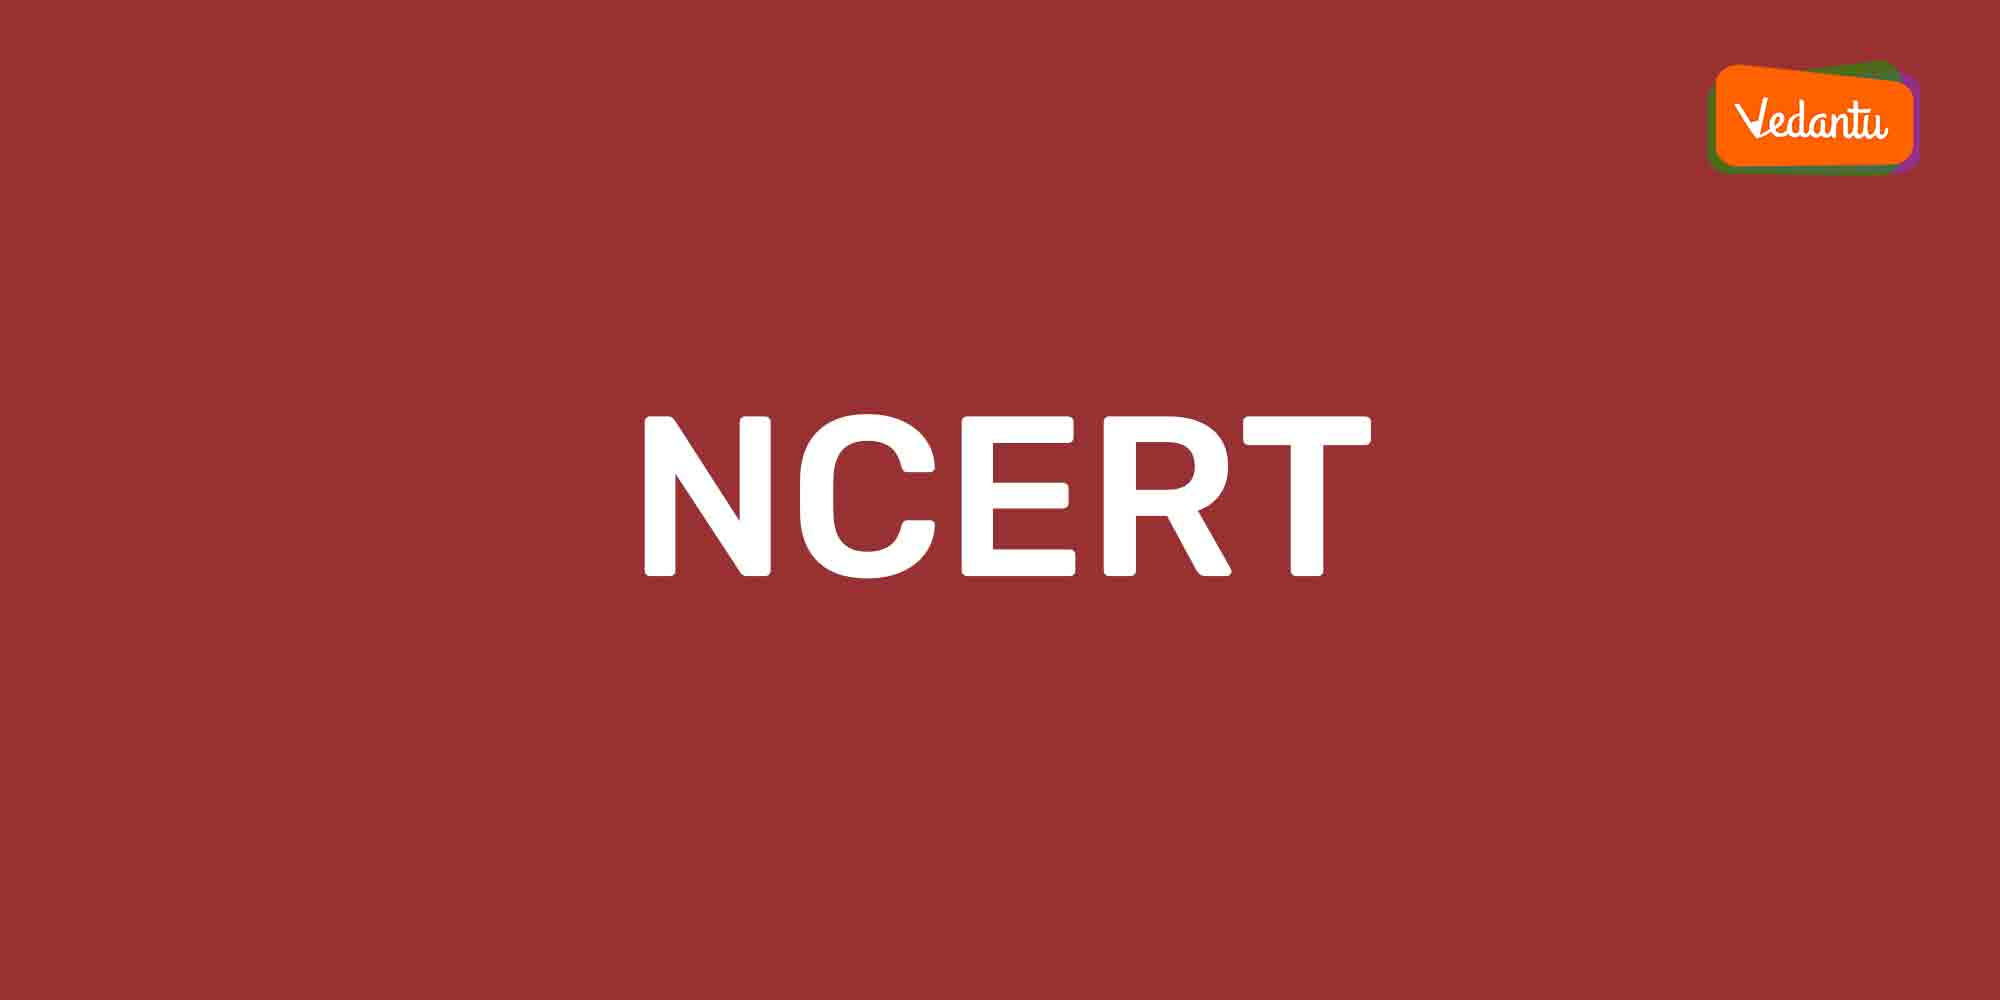 Tips to Use NCERT Biology Book for NEET Preparation